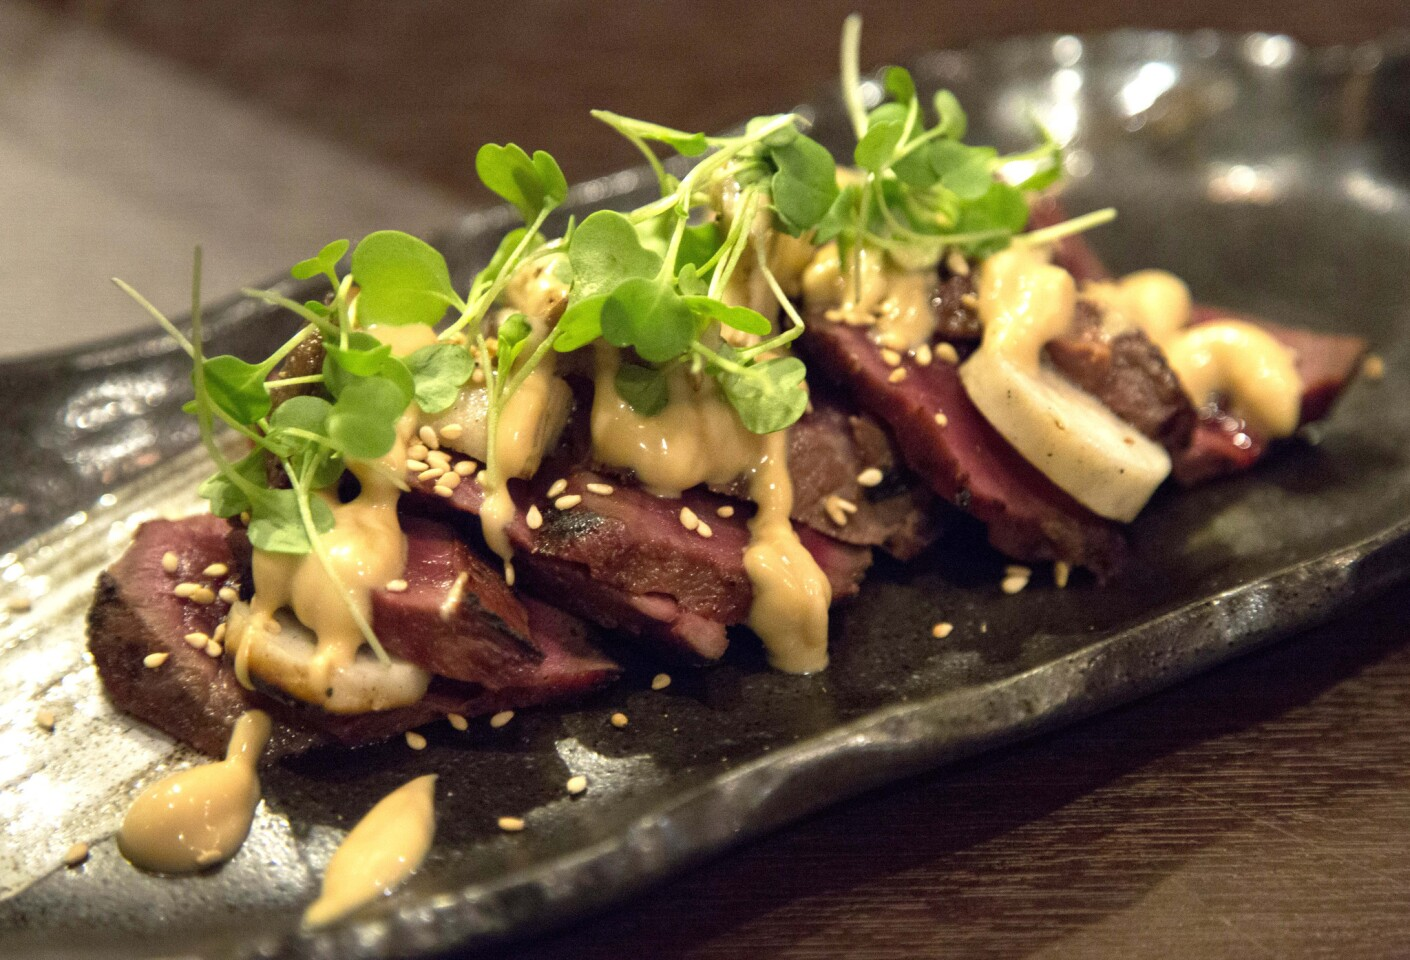 Grilled miso heart served with king oyster mushrooms and yuzi miso vinaigrette.